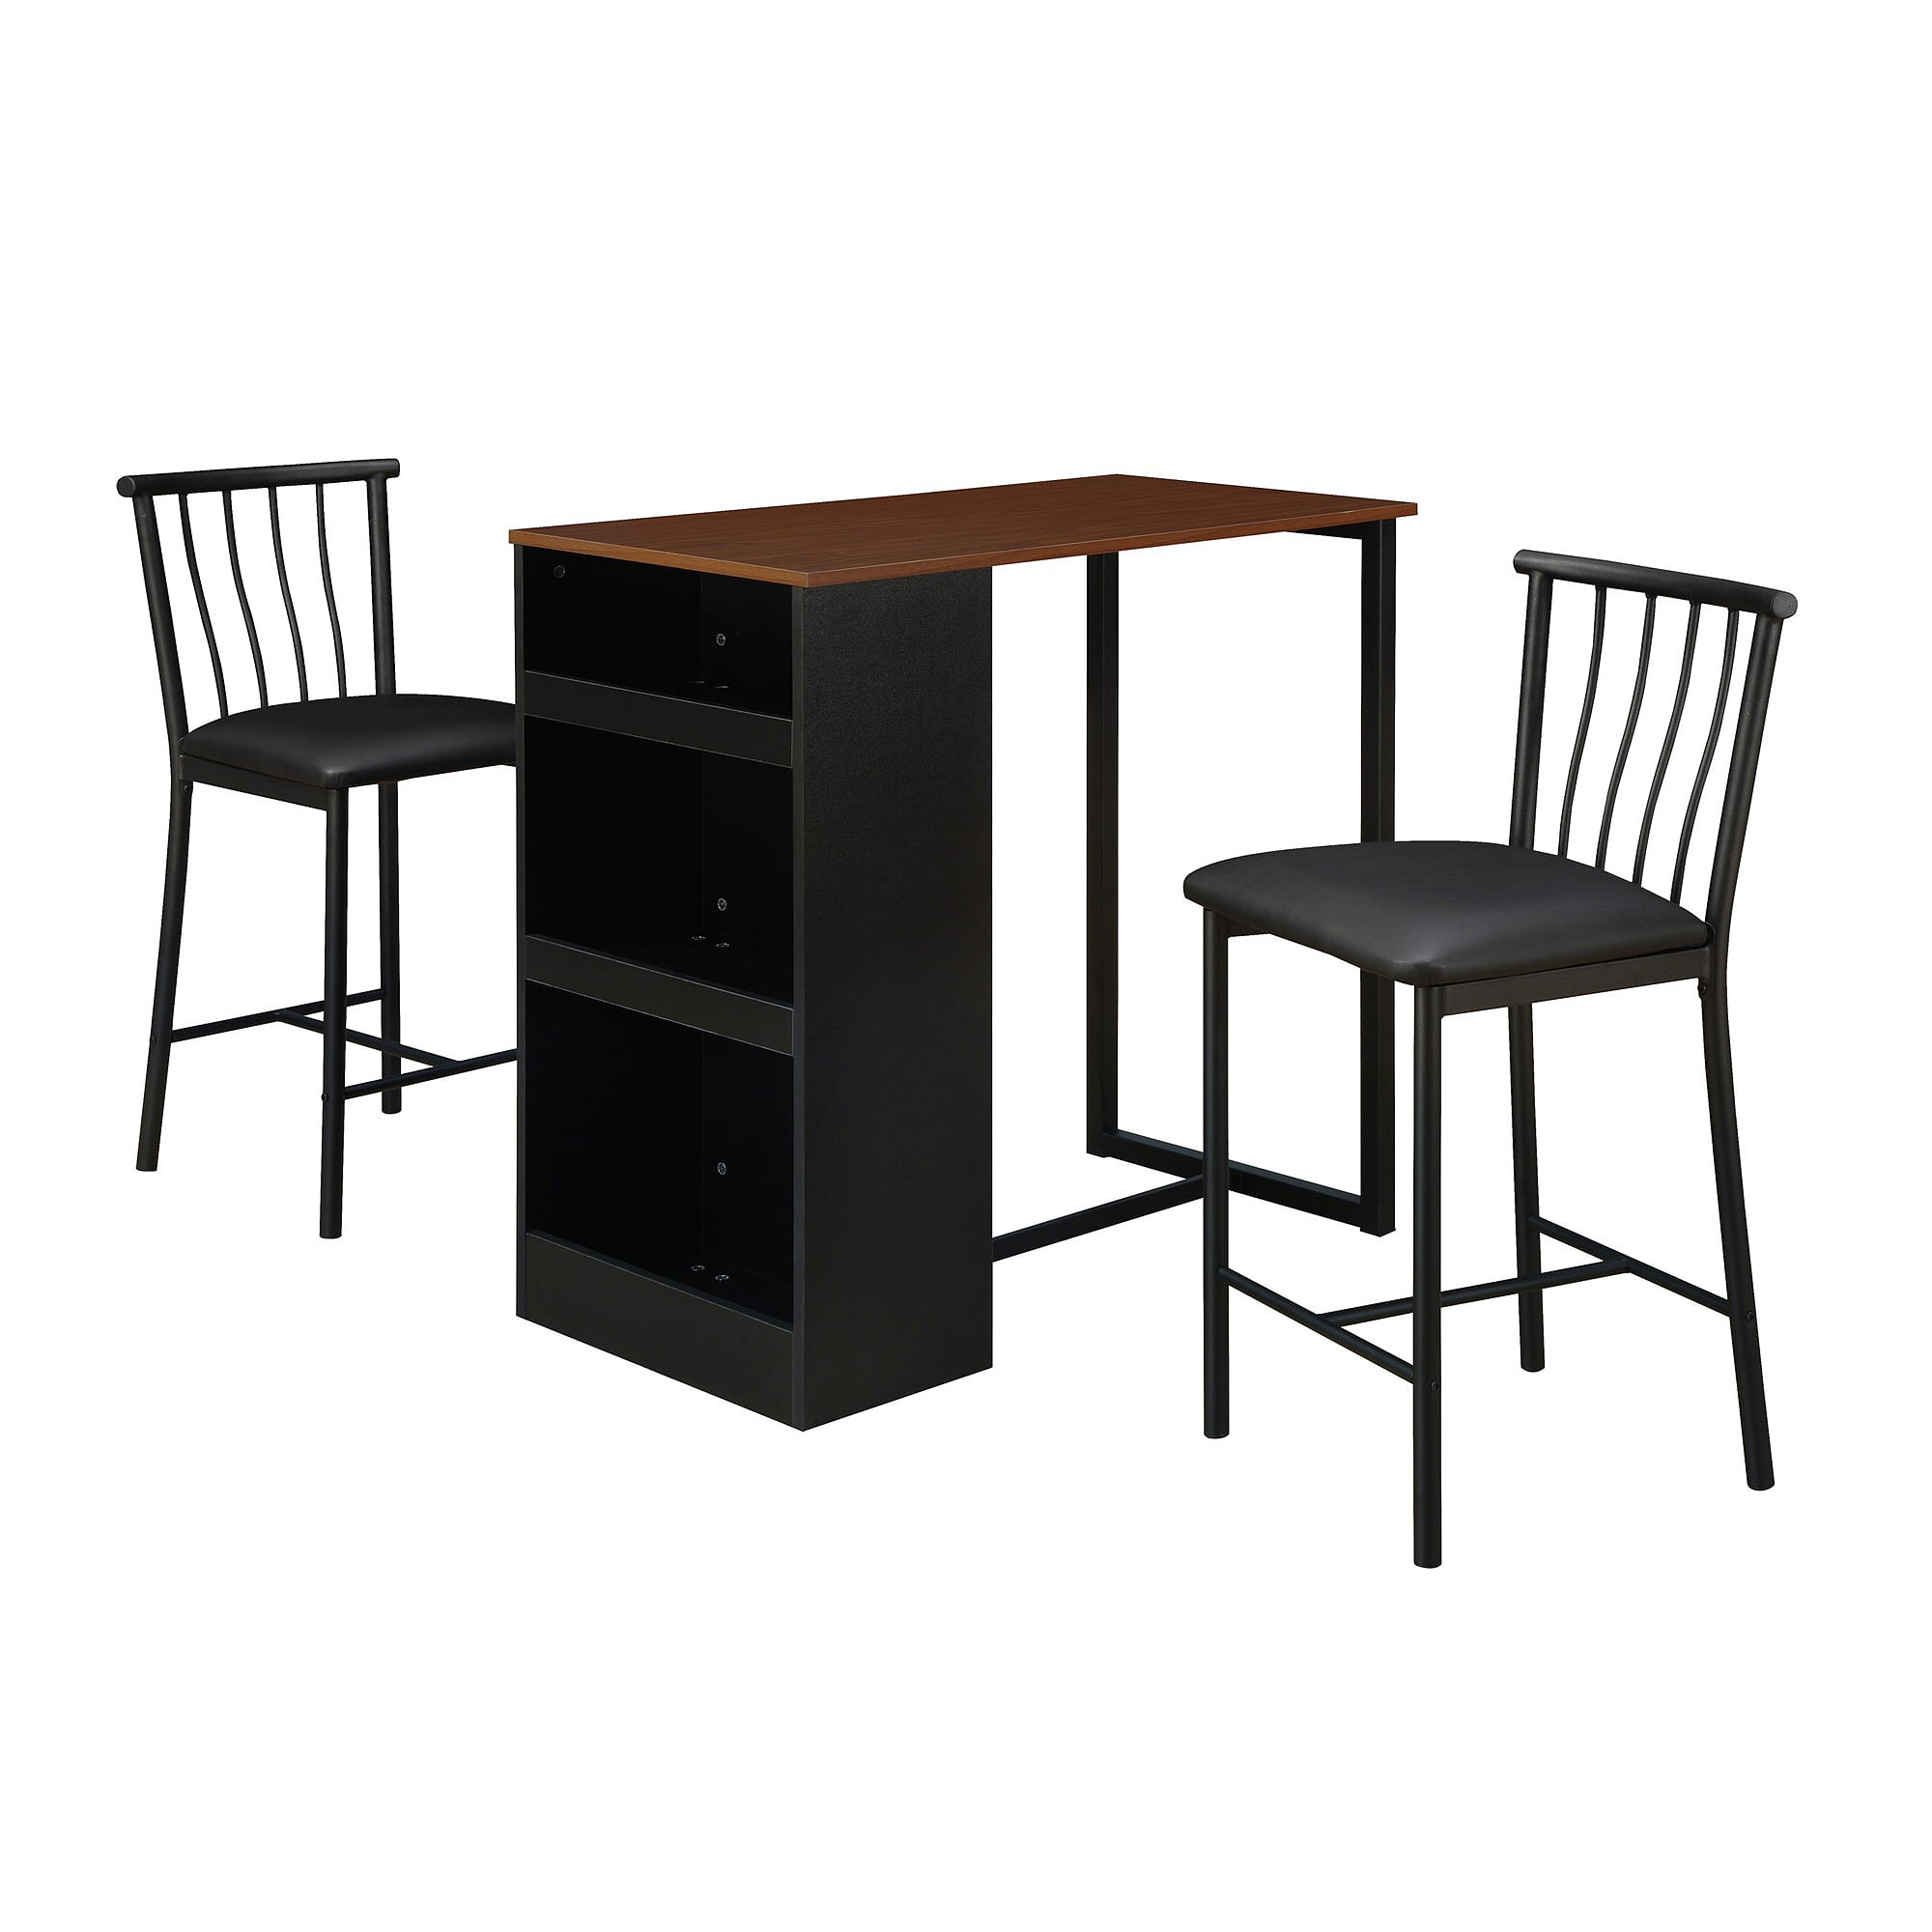 dorel living isla 3 piece counter height dining set with storage